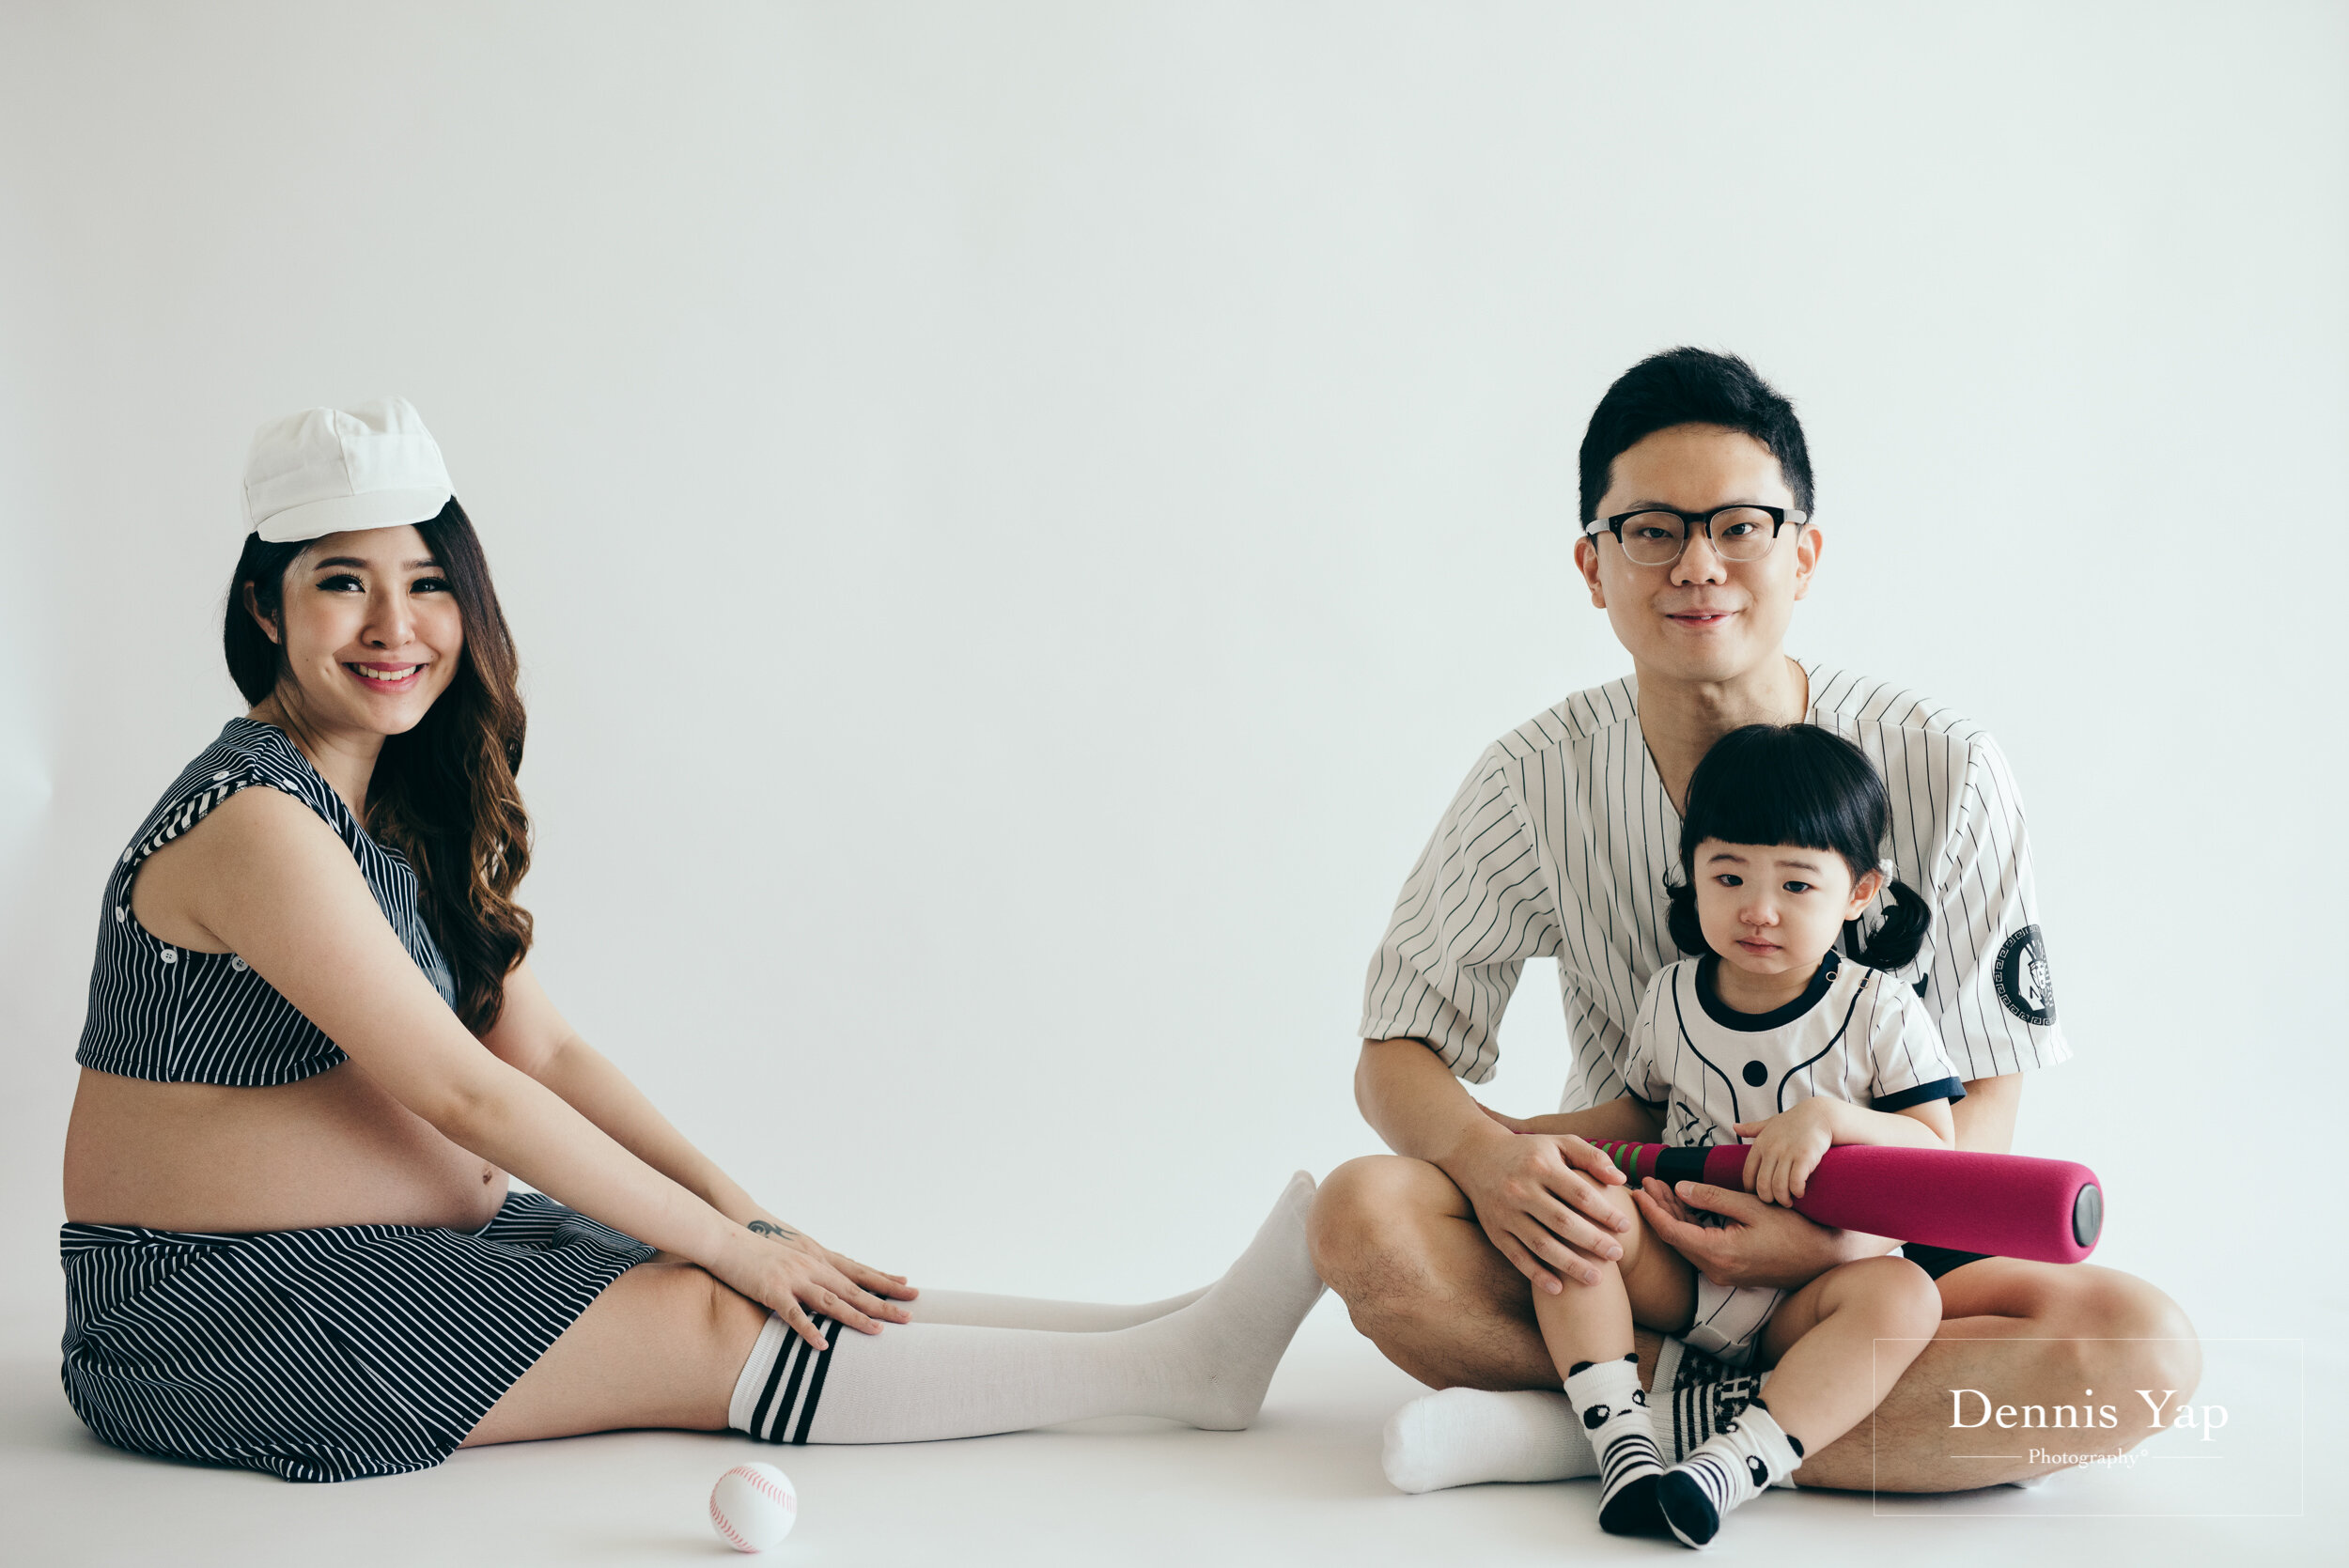 isaac evon maternity family portrait dennis yap photography studio indoor fun colorful-114.jpg